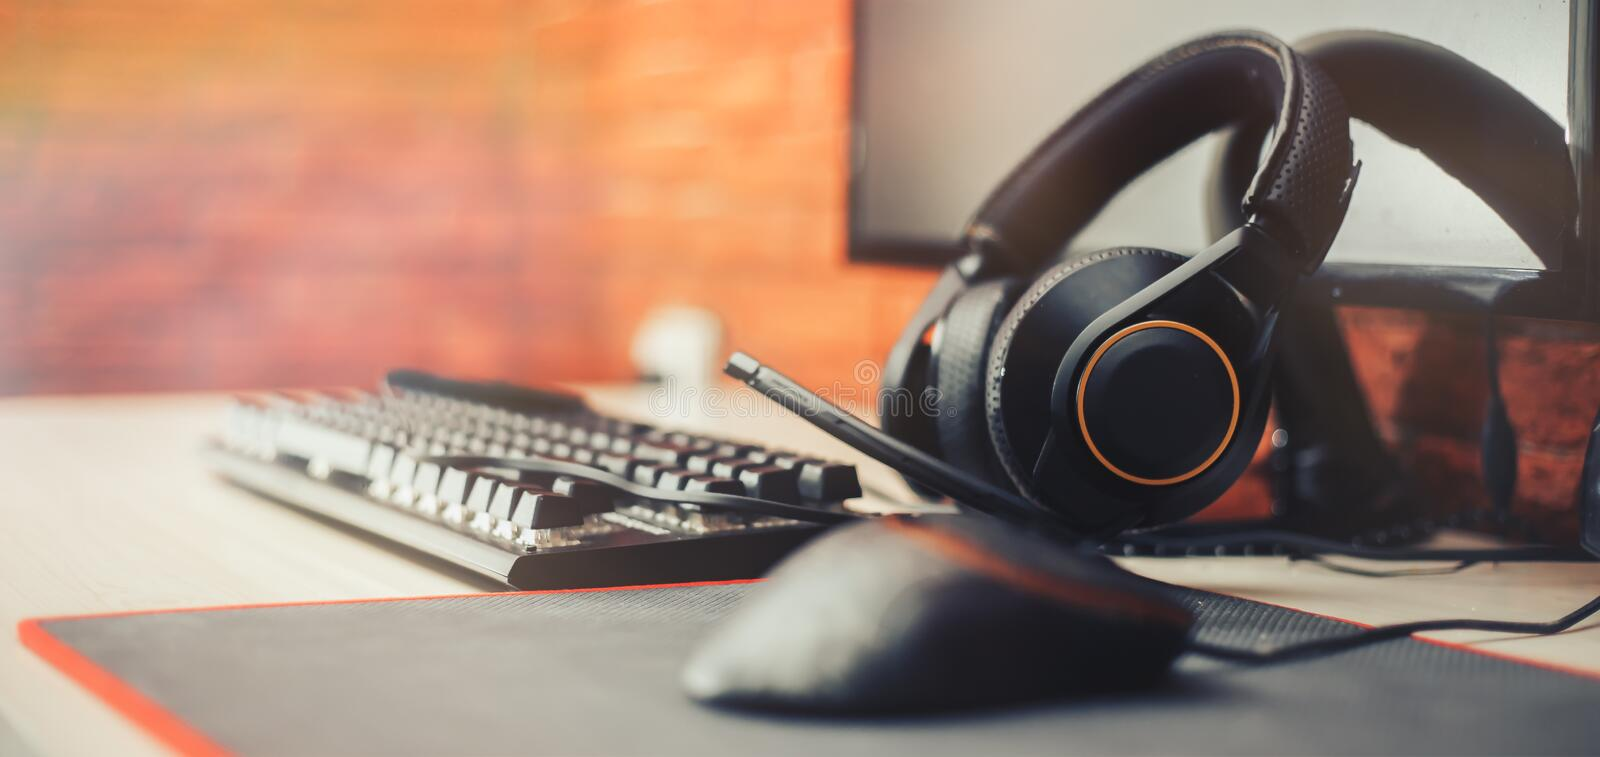 Gaming arena background with mouse gear headphones computer, focuse on headphones selected focuse long banner royalty free stock images